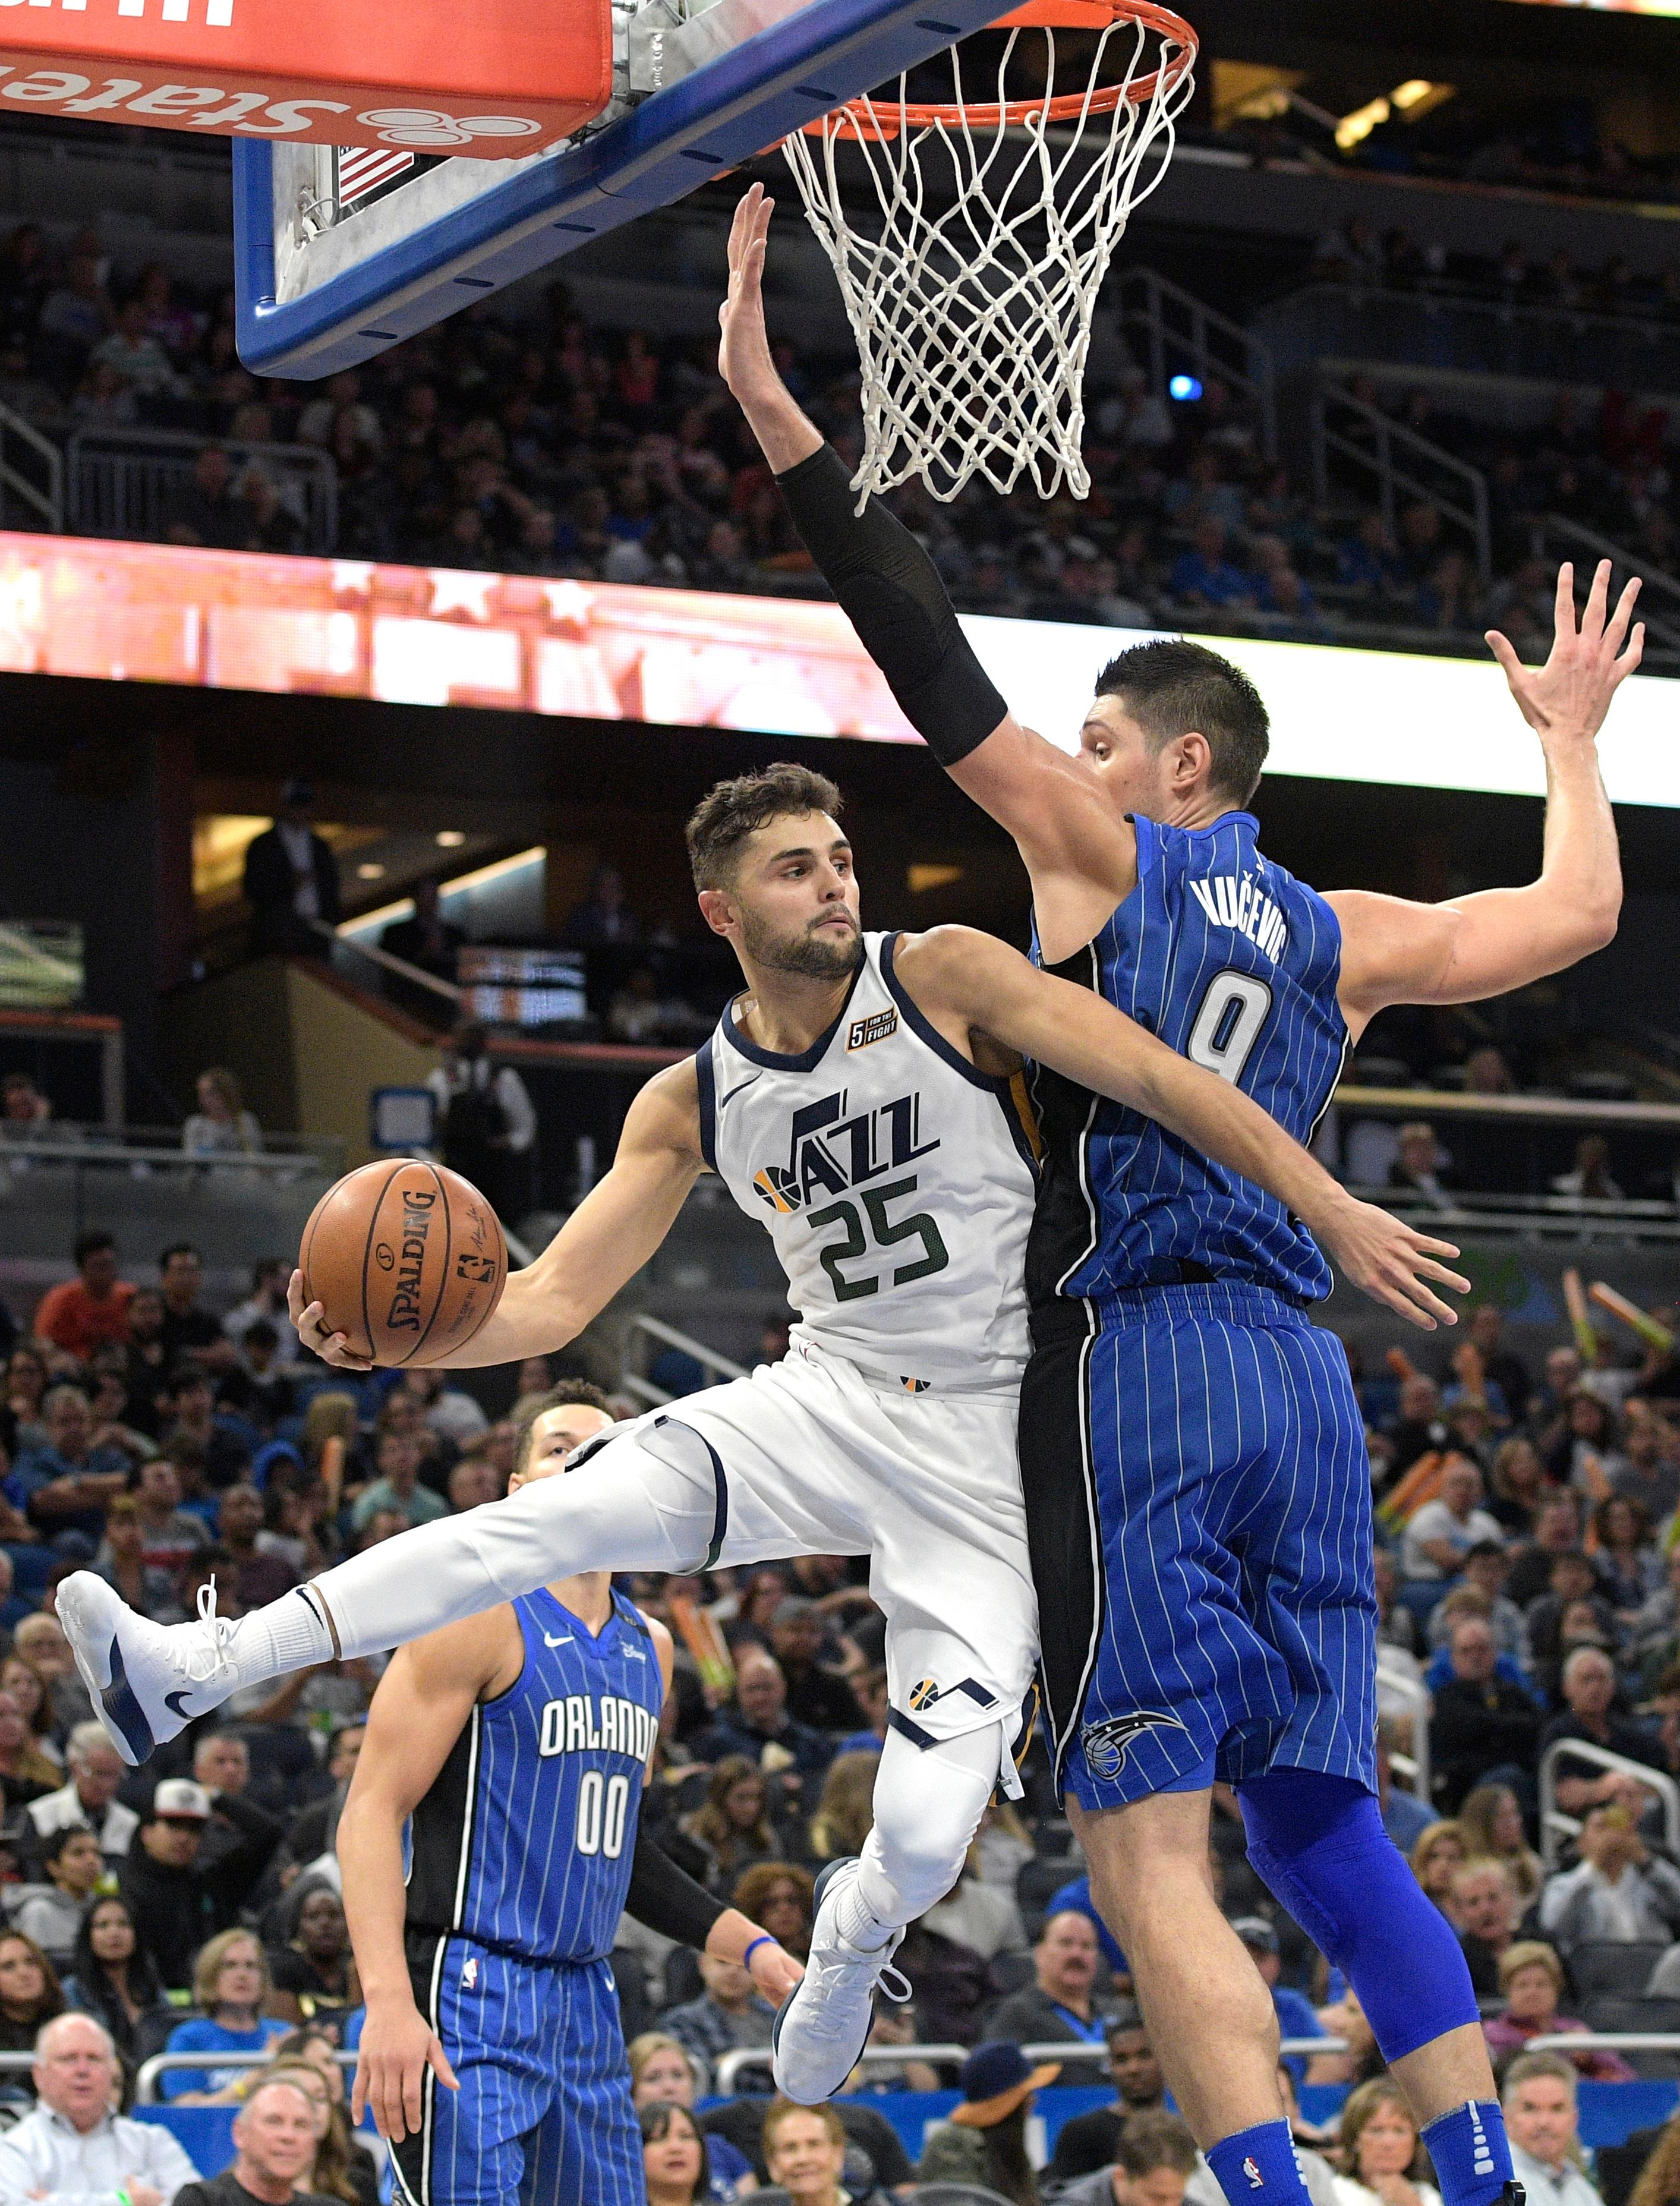 Utah Jazz guard Raul Neto (25) passes the ball around Orlando Magic center Nikola Vucevic (9) after driving to the basket during the second half of an NBA basketball game, Saturday, Nov. 18, 2017, in Orlando, Fla. The Jazz won 125-85. (AP Photo/Phelan M. Ebenhack)